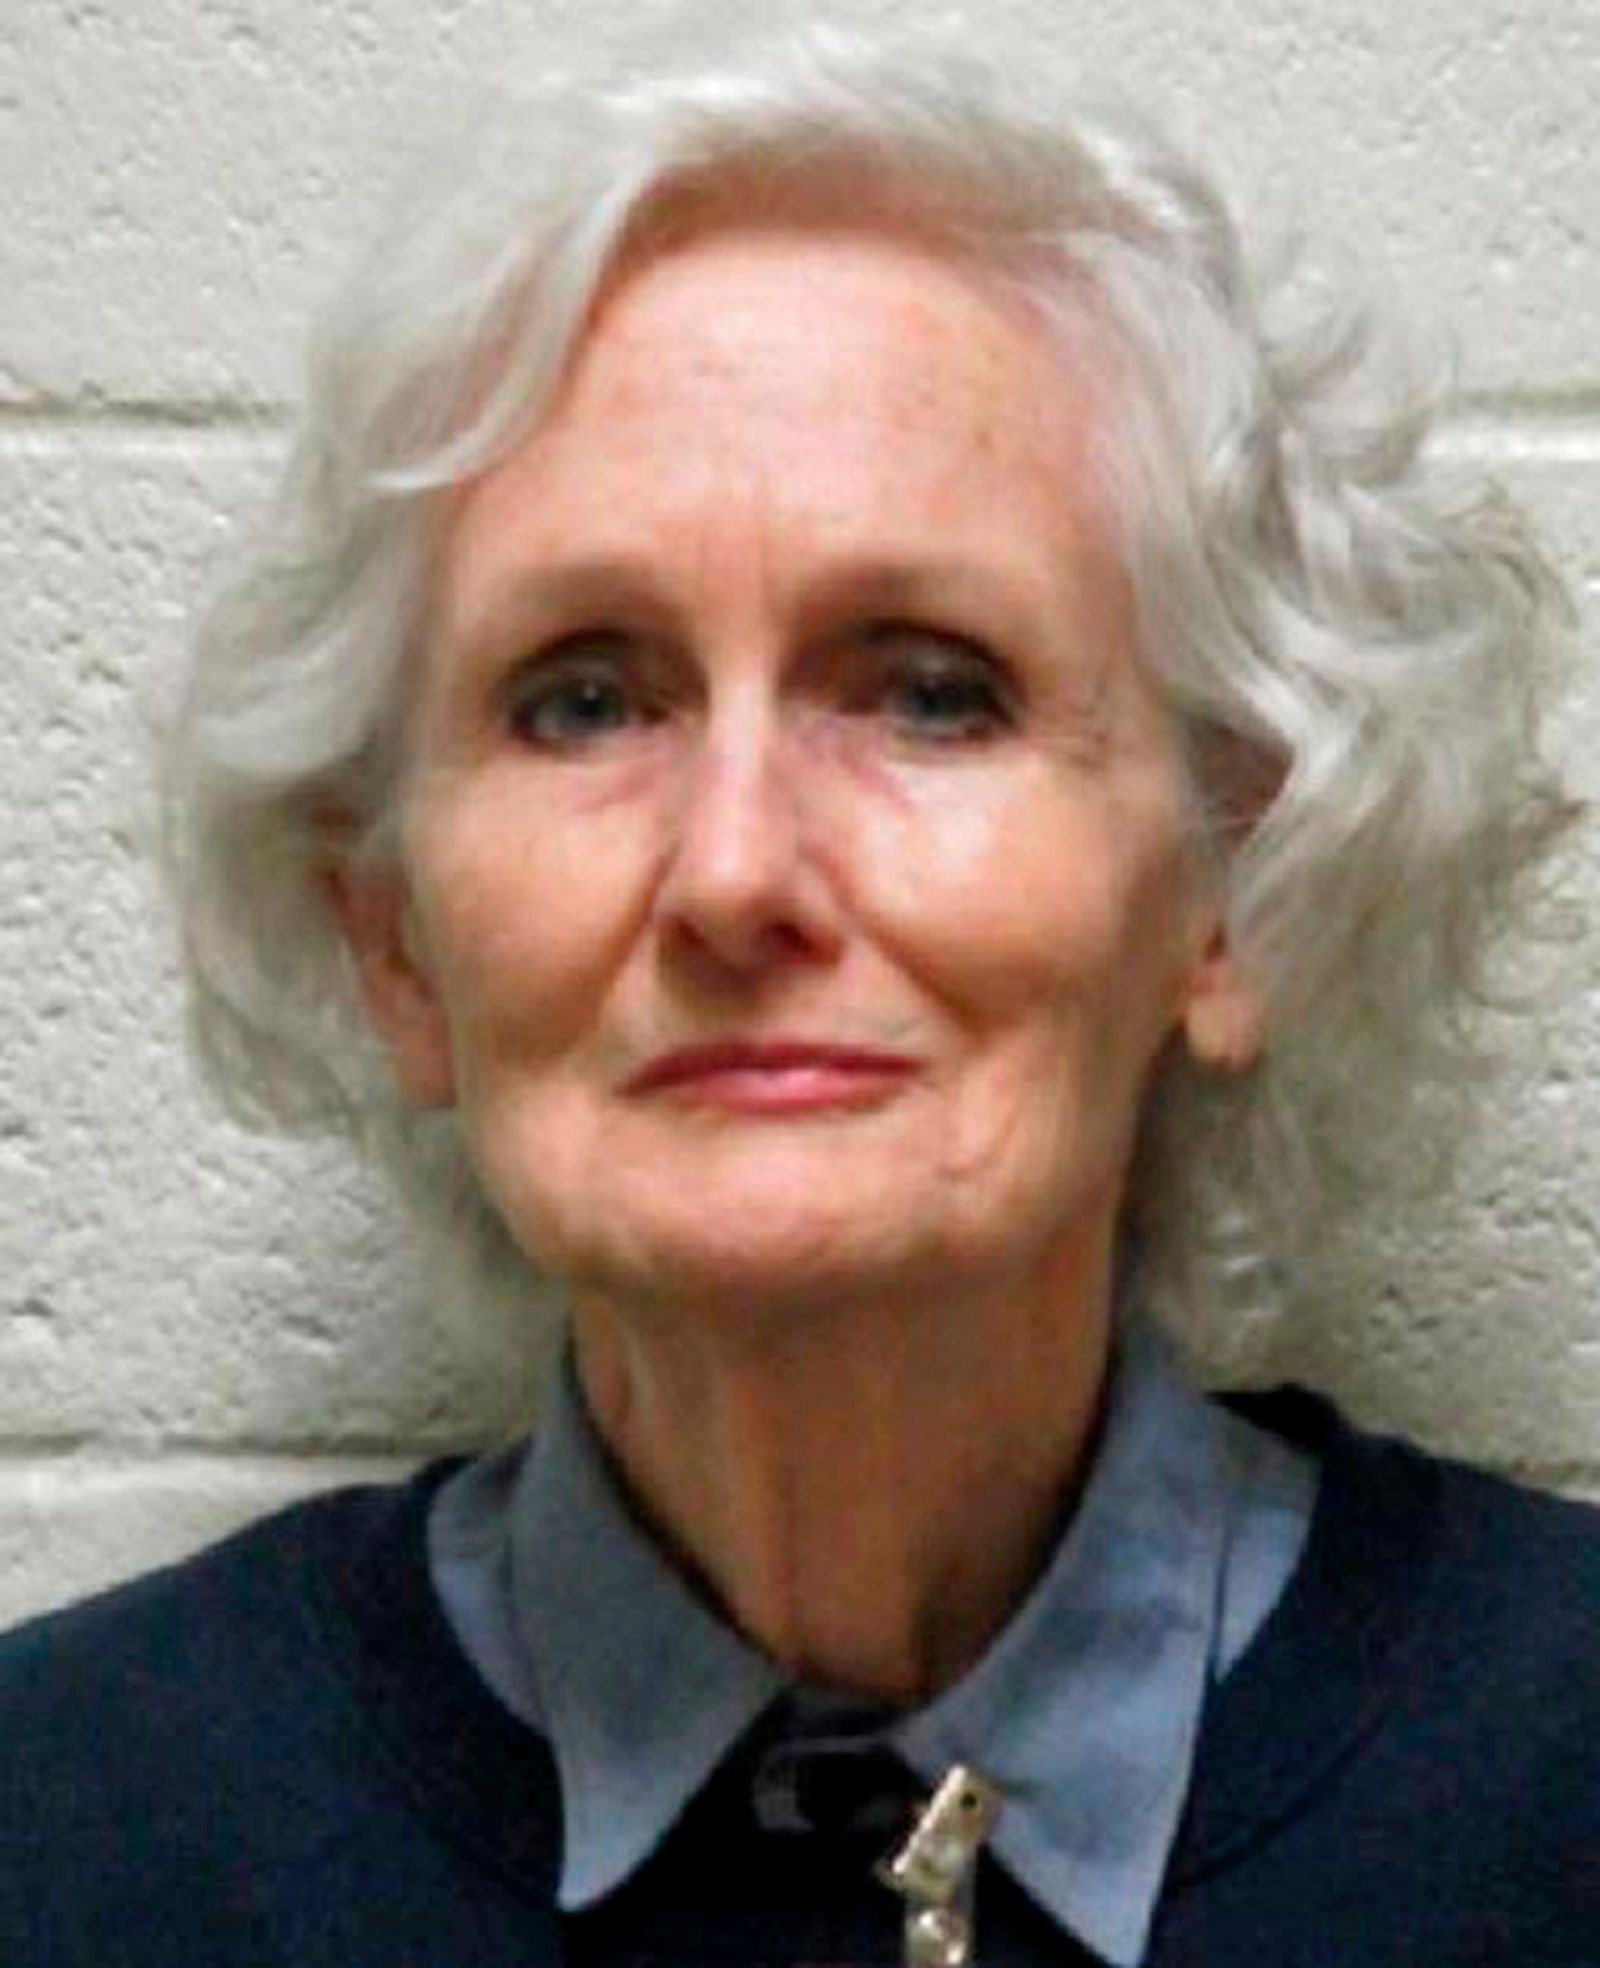 "This undated photo provided by the Nevada Department of Corrections shows Margaret Rudin, 76, the Las Vegas socialite dubbed a ""black widow killer,"" following the 1994 slaying of her millionaire husband and her years as a fugitive before her arrest in 1999. Rudin was released from prison Friday, Jan. 10, 2020, after winning parole from her 20-years-to-life sentence for the killing of real estate mogul Ron Rudin. She is appealing her 2001 murder conviction, maintaining that she is innocent. (Nevada Department of Corrections via AP)"